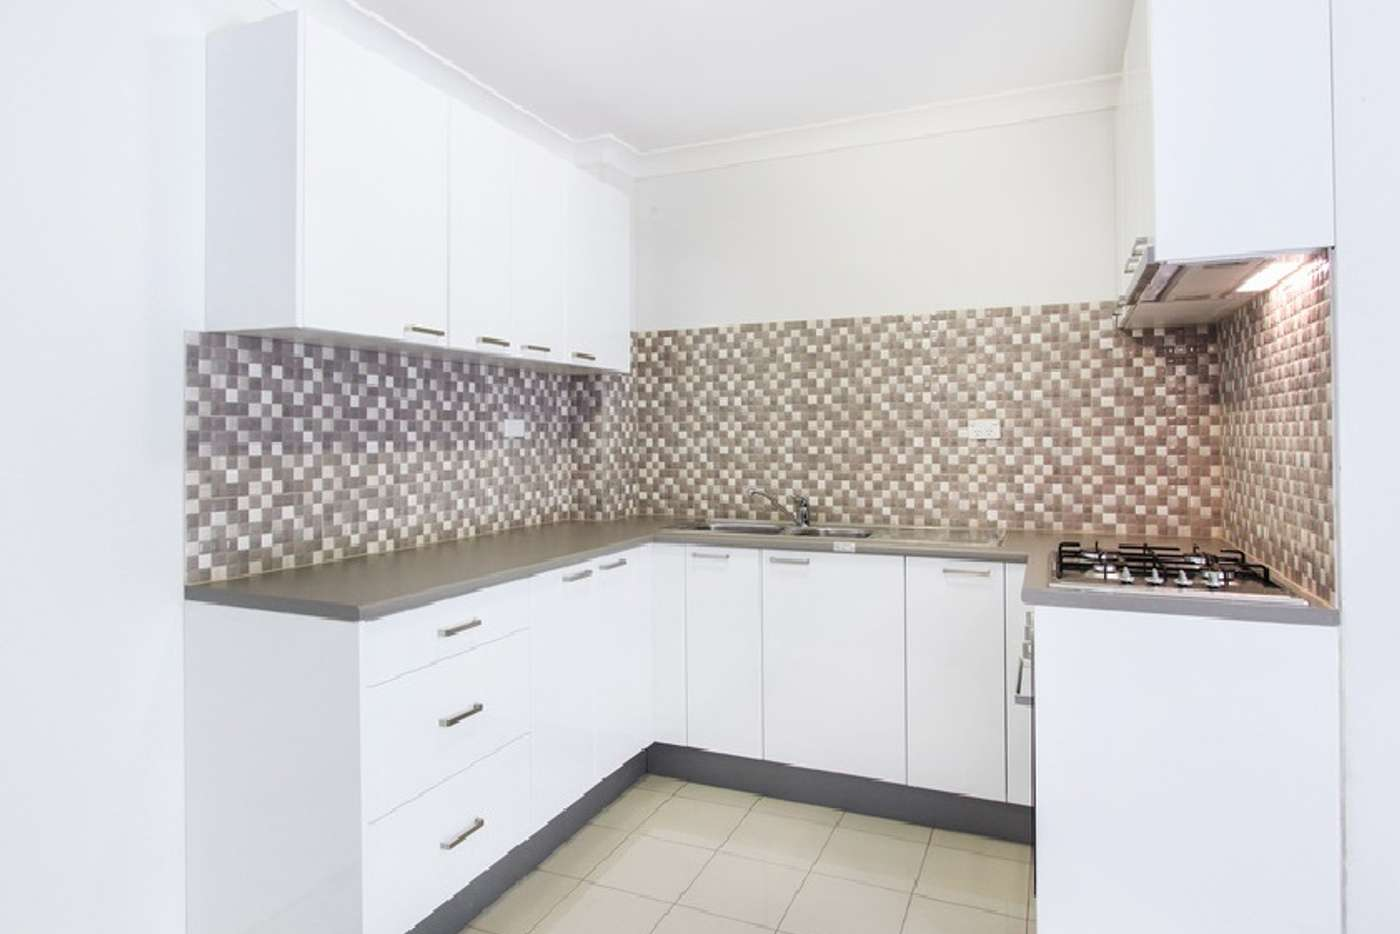 Sixth view of Homely apartment listing, Unit 36/8-10 Fourth Avenue, Blacktown NSW 2148